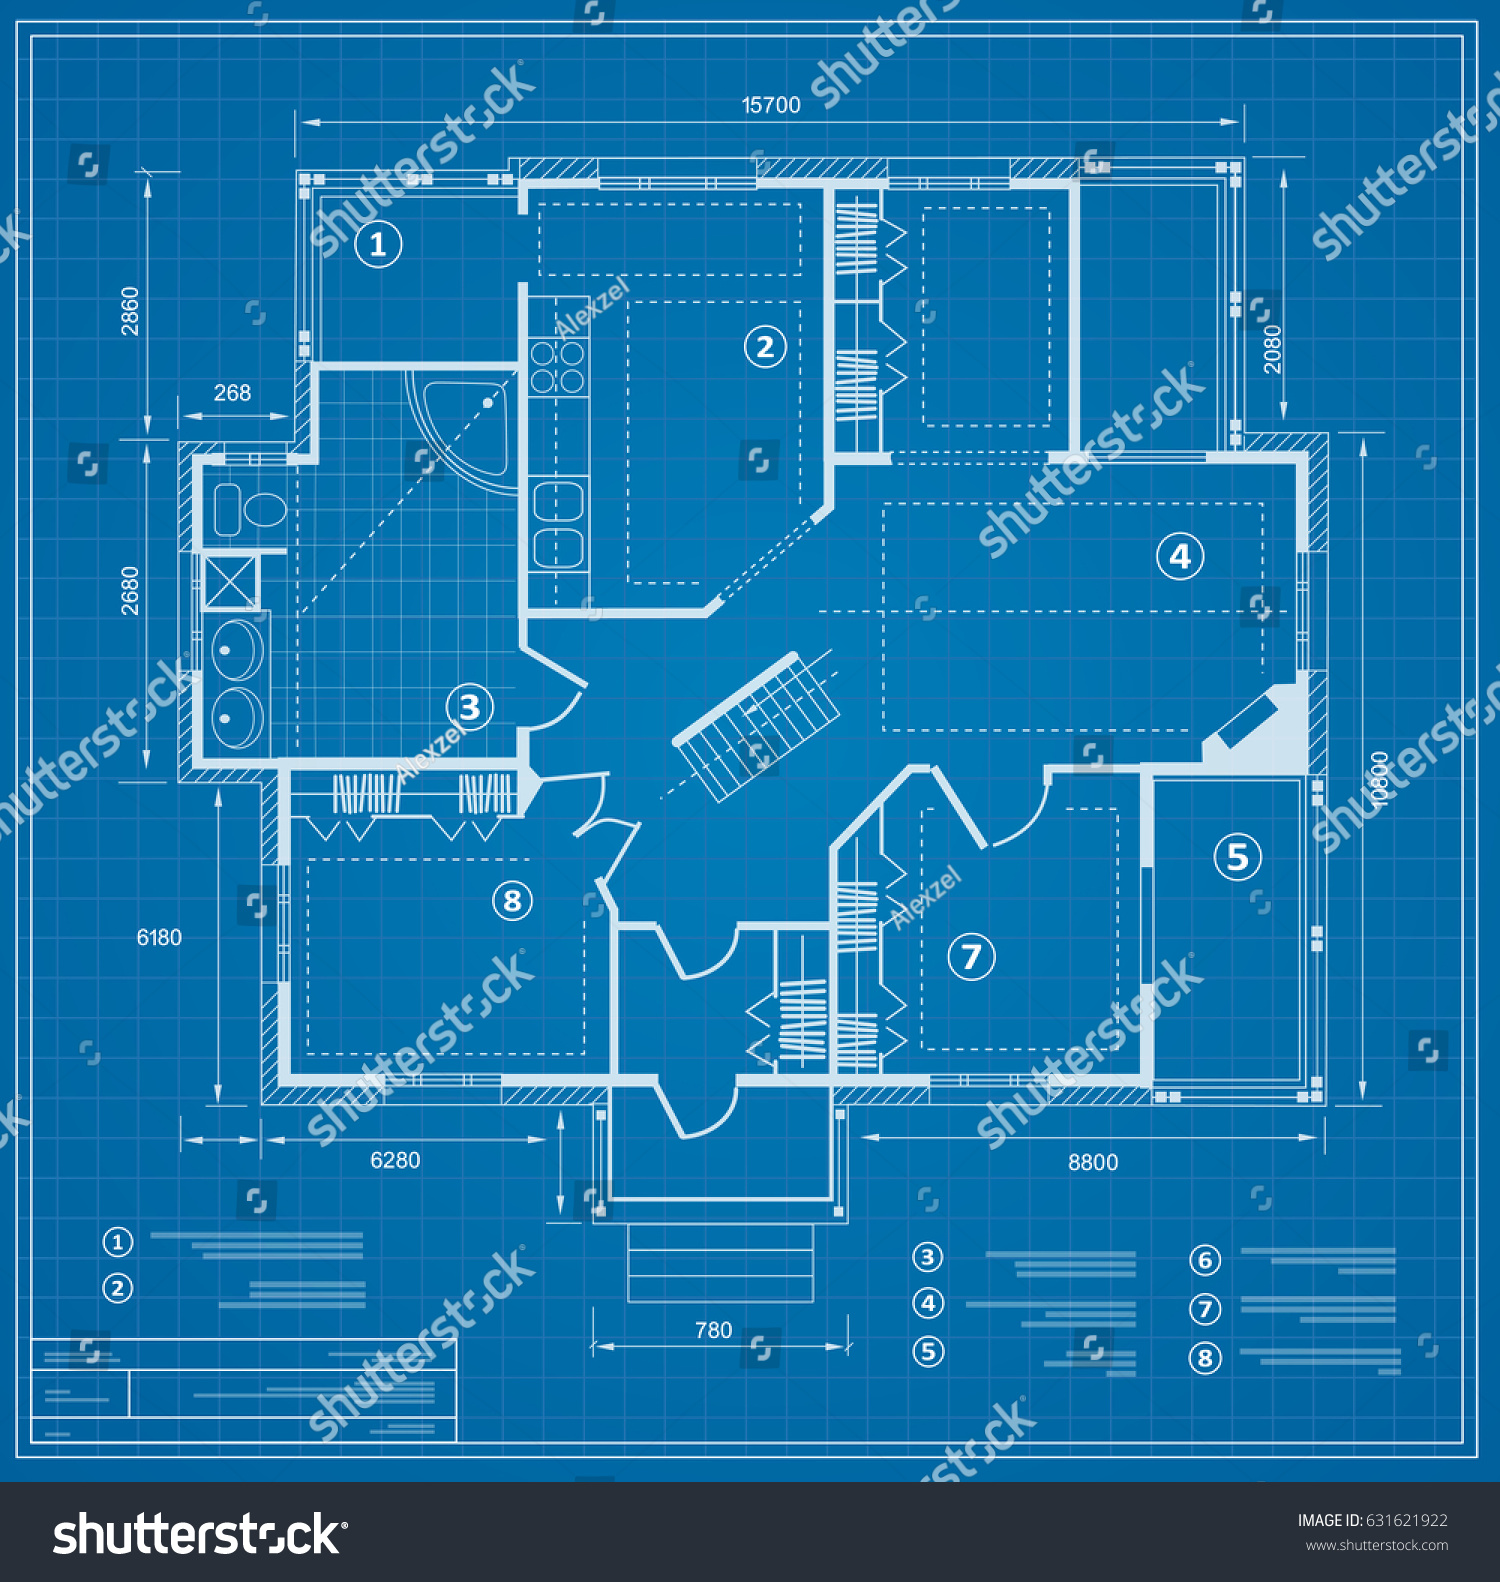 Blueprint house plan drawing figure jotting stock vector 631621922 blueprint house plan drawing figure of the jotting sketch of the construction and the industrial malvernweather Choice Image